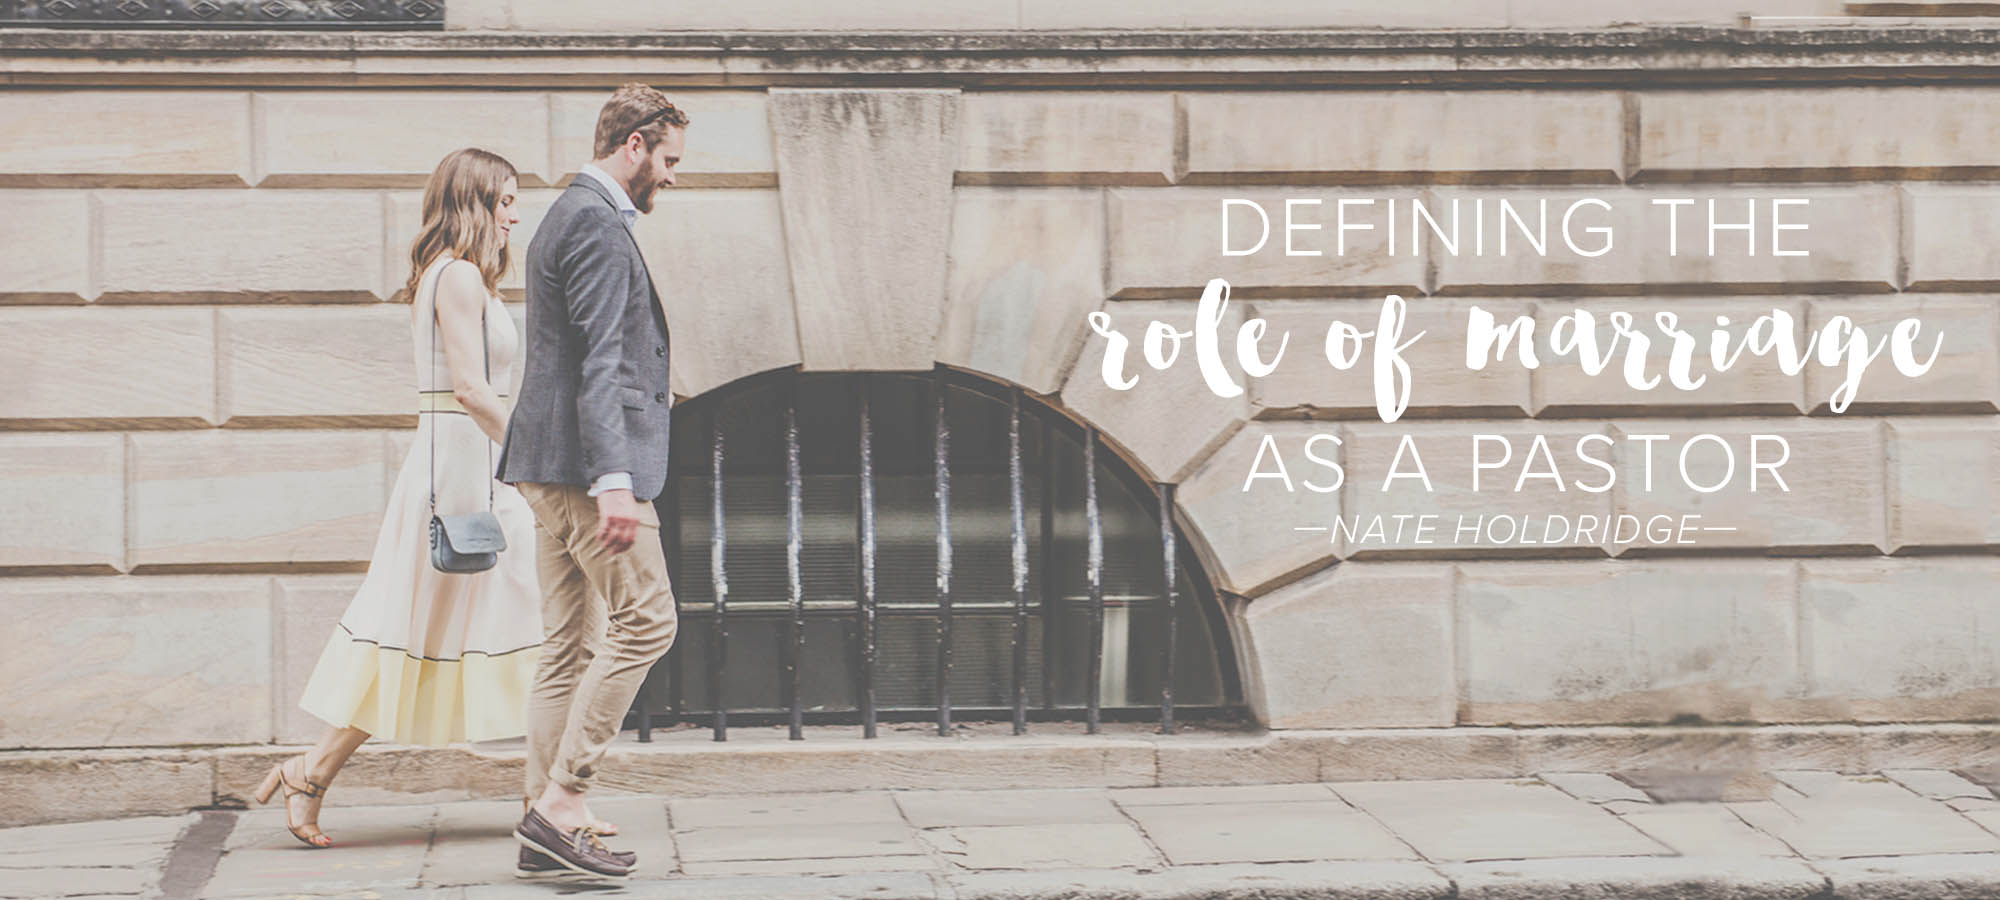 Defining the Role of Marriage as a Pastor